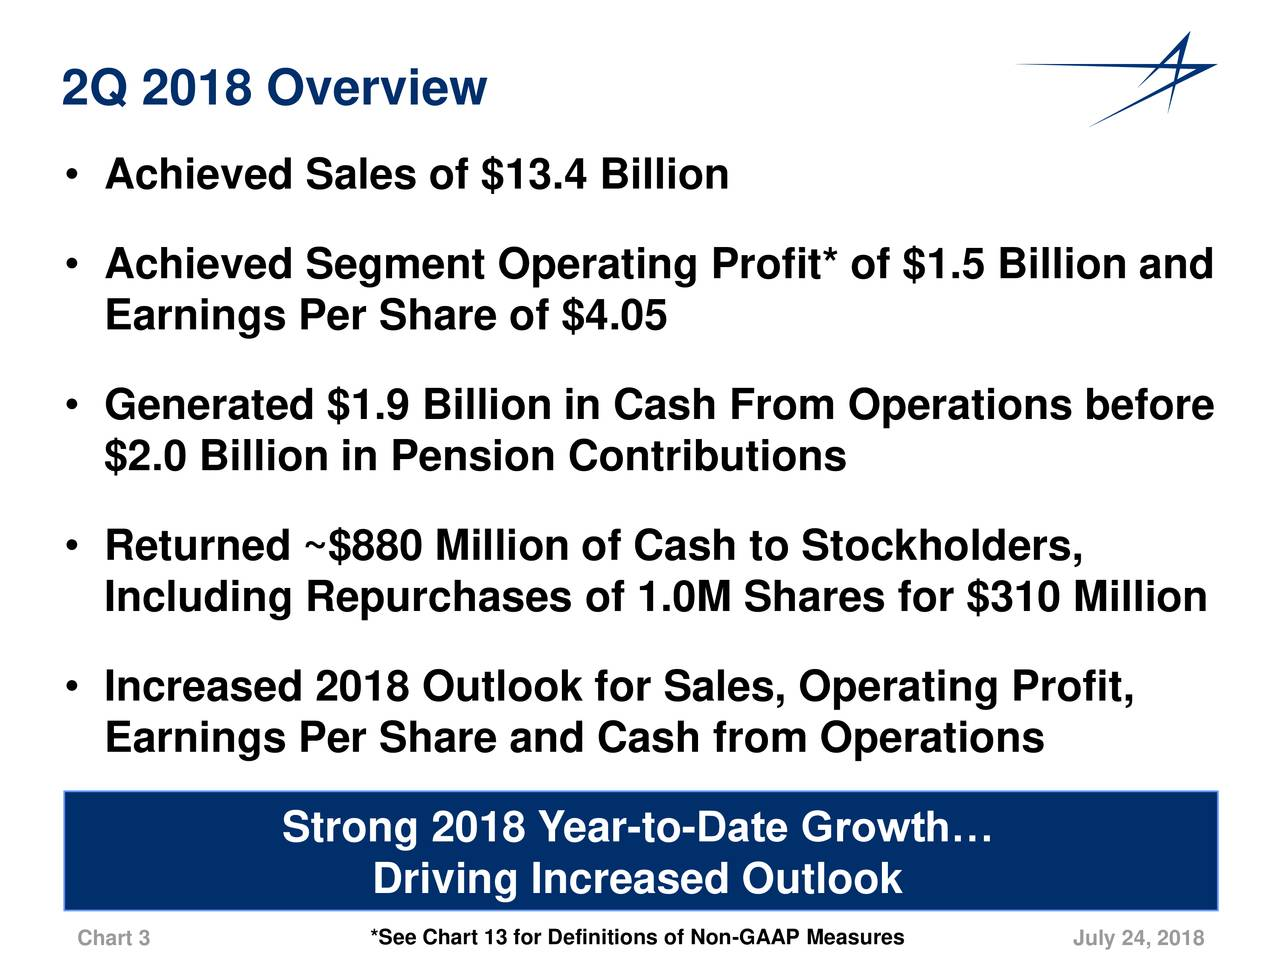 • Achieved Sales of $13.4 Billion • Achieved Segment Operating Profit* of $1.5 Billion and Earnings Per Share of $4.05 • Generated $1.9 Billion in Cash From Operations before $2.0 Billion in Pension Contributions • Returned ~$880 Million of Cash to Stockholders, Including Repurchases of 1.0M Shares for $310 Million • Increased 2018 Outlook for Sales, Operating Profit, Earnings Per Share and Cash from Operations Strong 2018 Year-to-Date Growth… Driving Increased Outlook